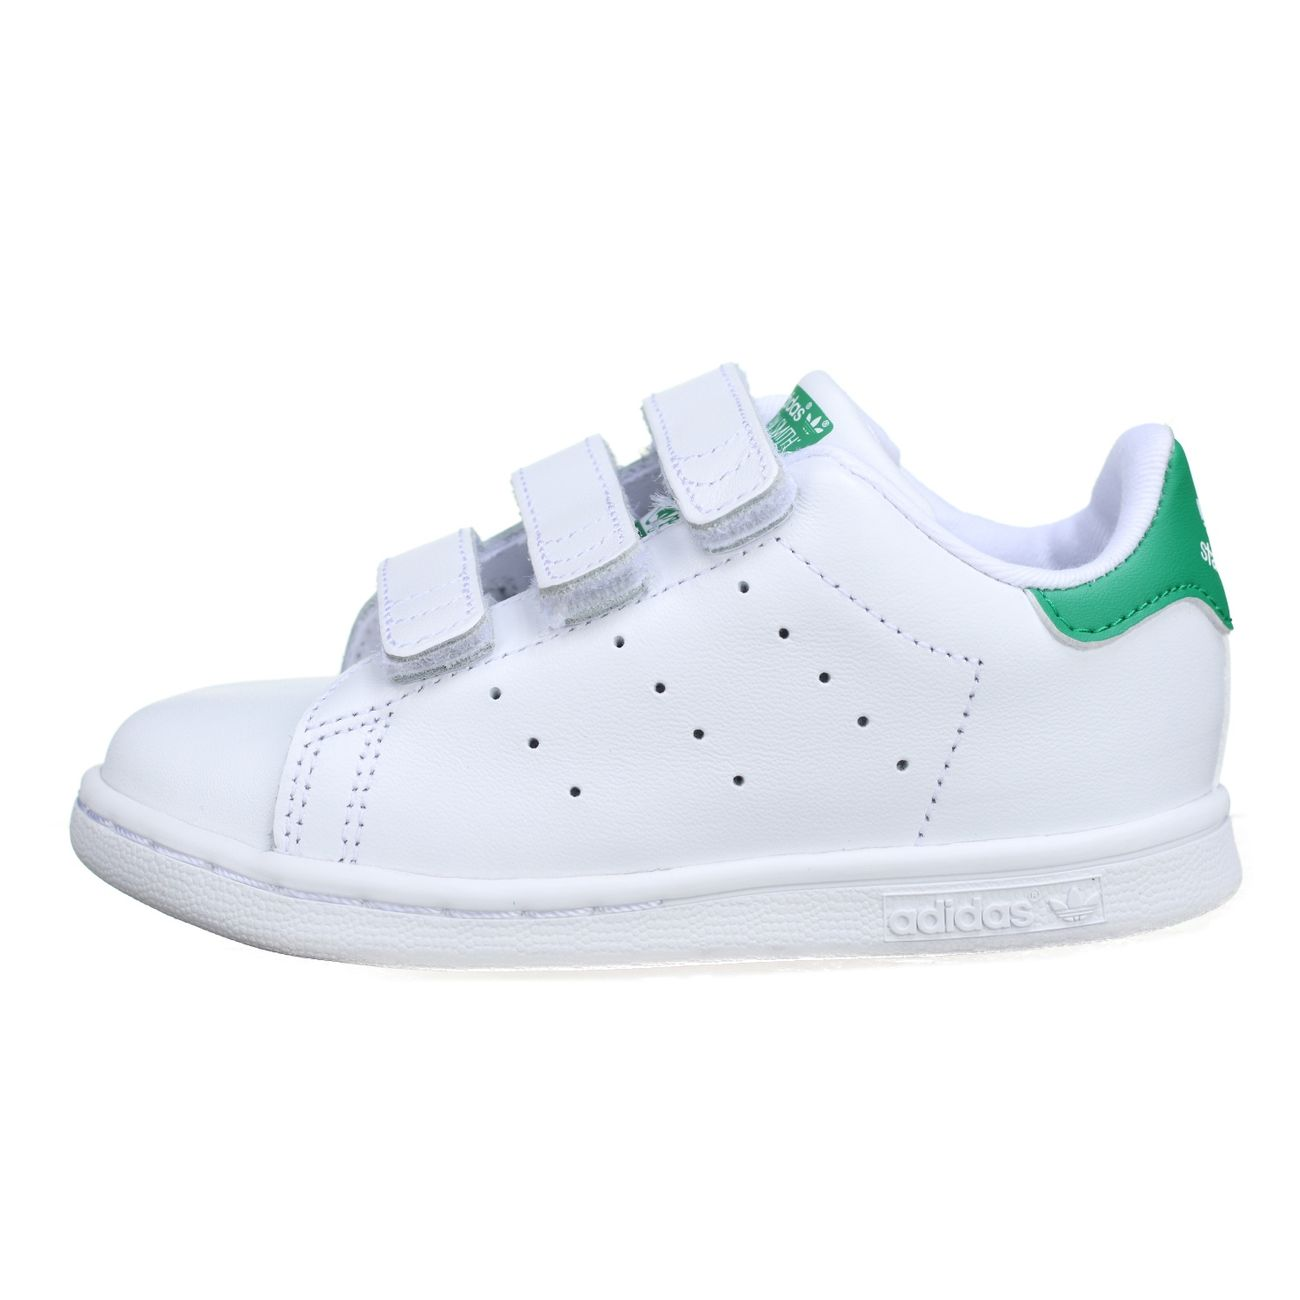 Mode Lifestyle Bébé ADIDAS ORIGINALS Basket adidas Originals Stan Smith Bébé BZ0520